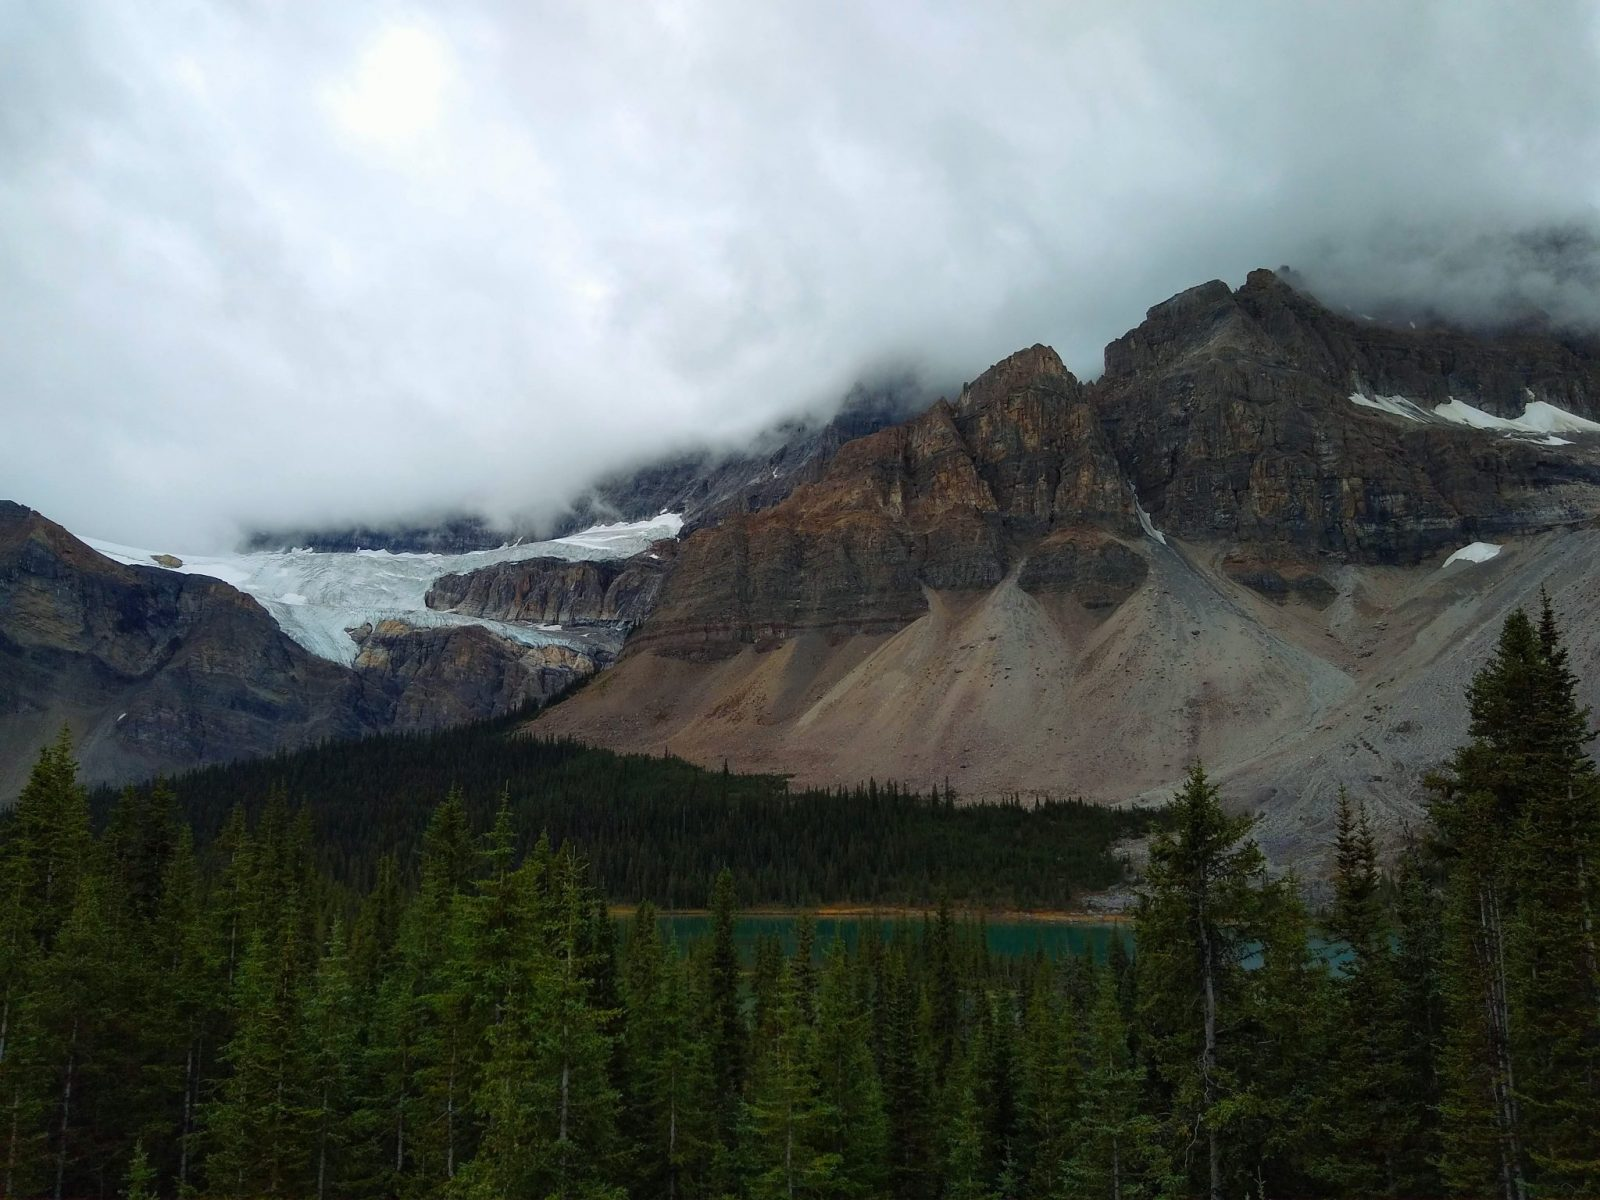 mountains with a hanging glacier above a lake and forests on a dark and overcast day